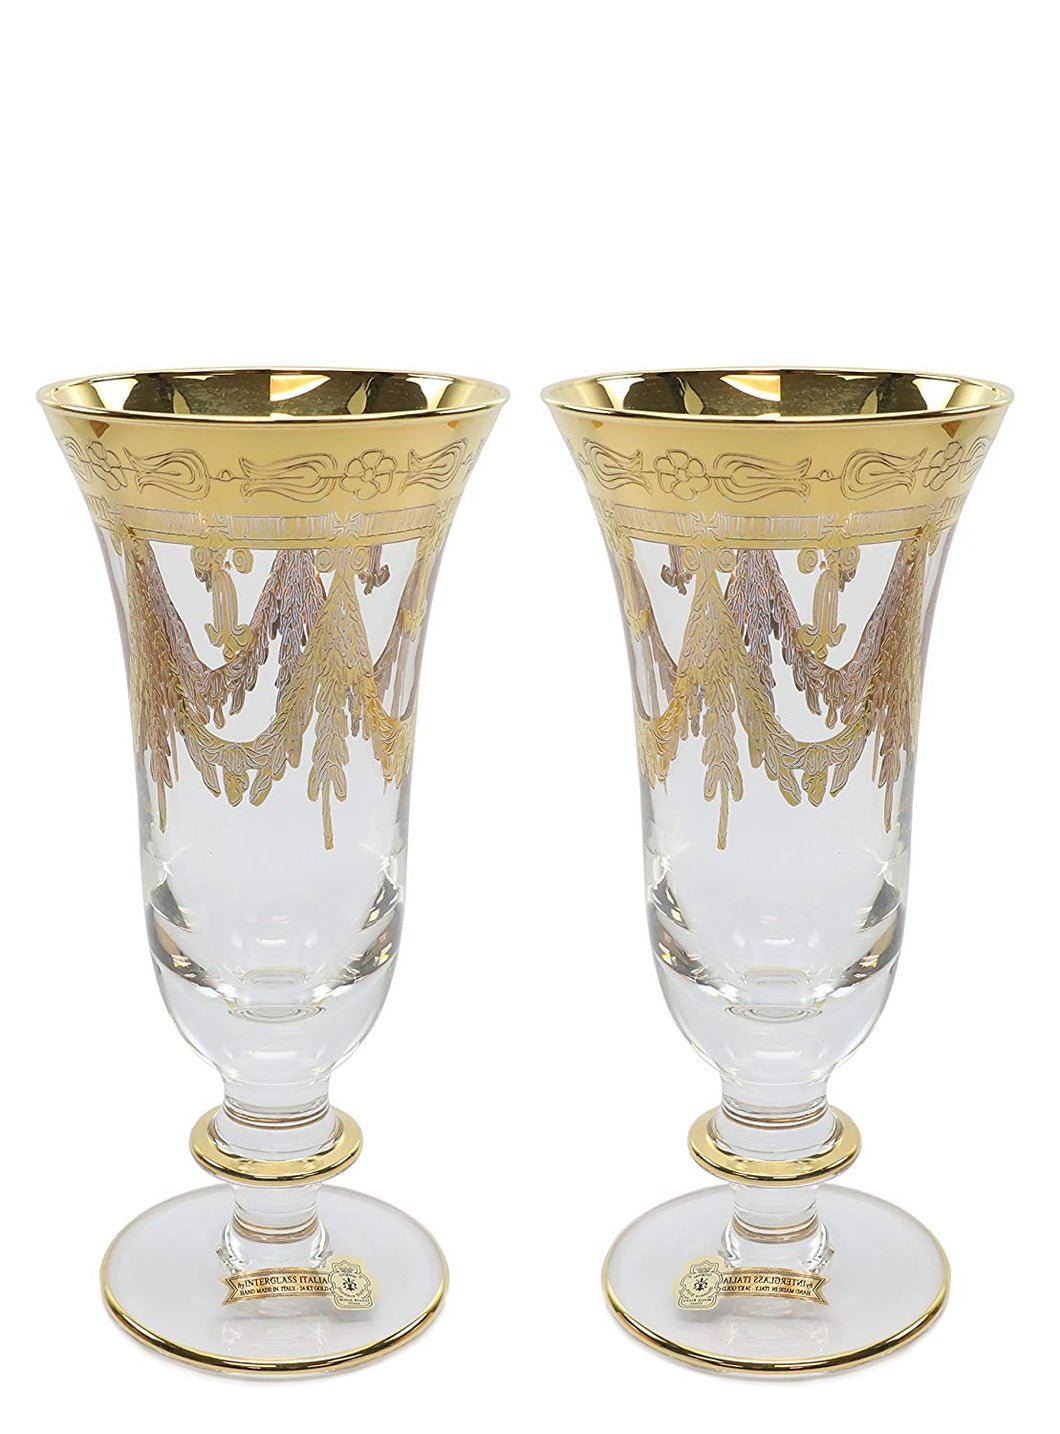 Interglass Italy 2pc Luxury Crystal Glasses, 24K Gold-Plated (Champagne)